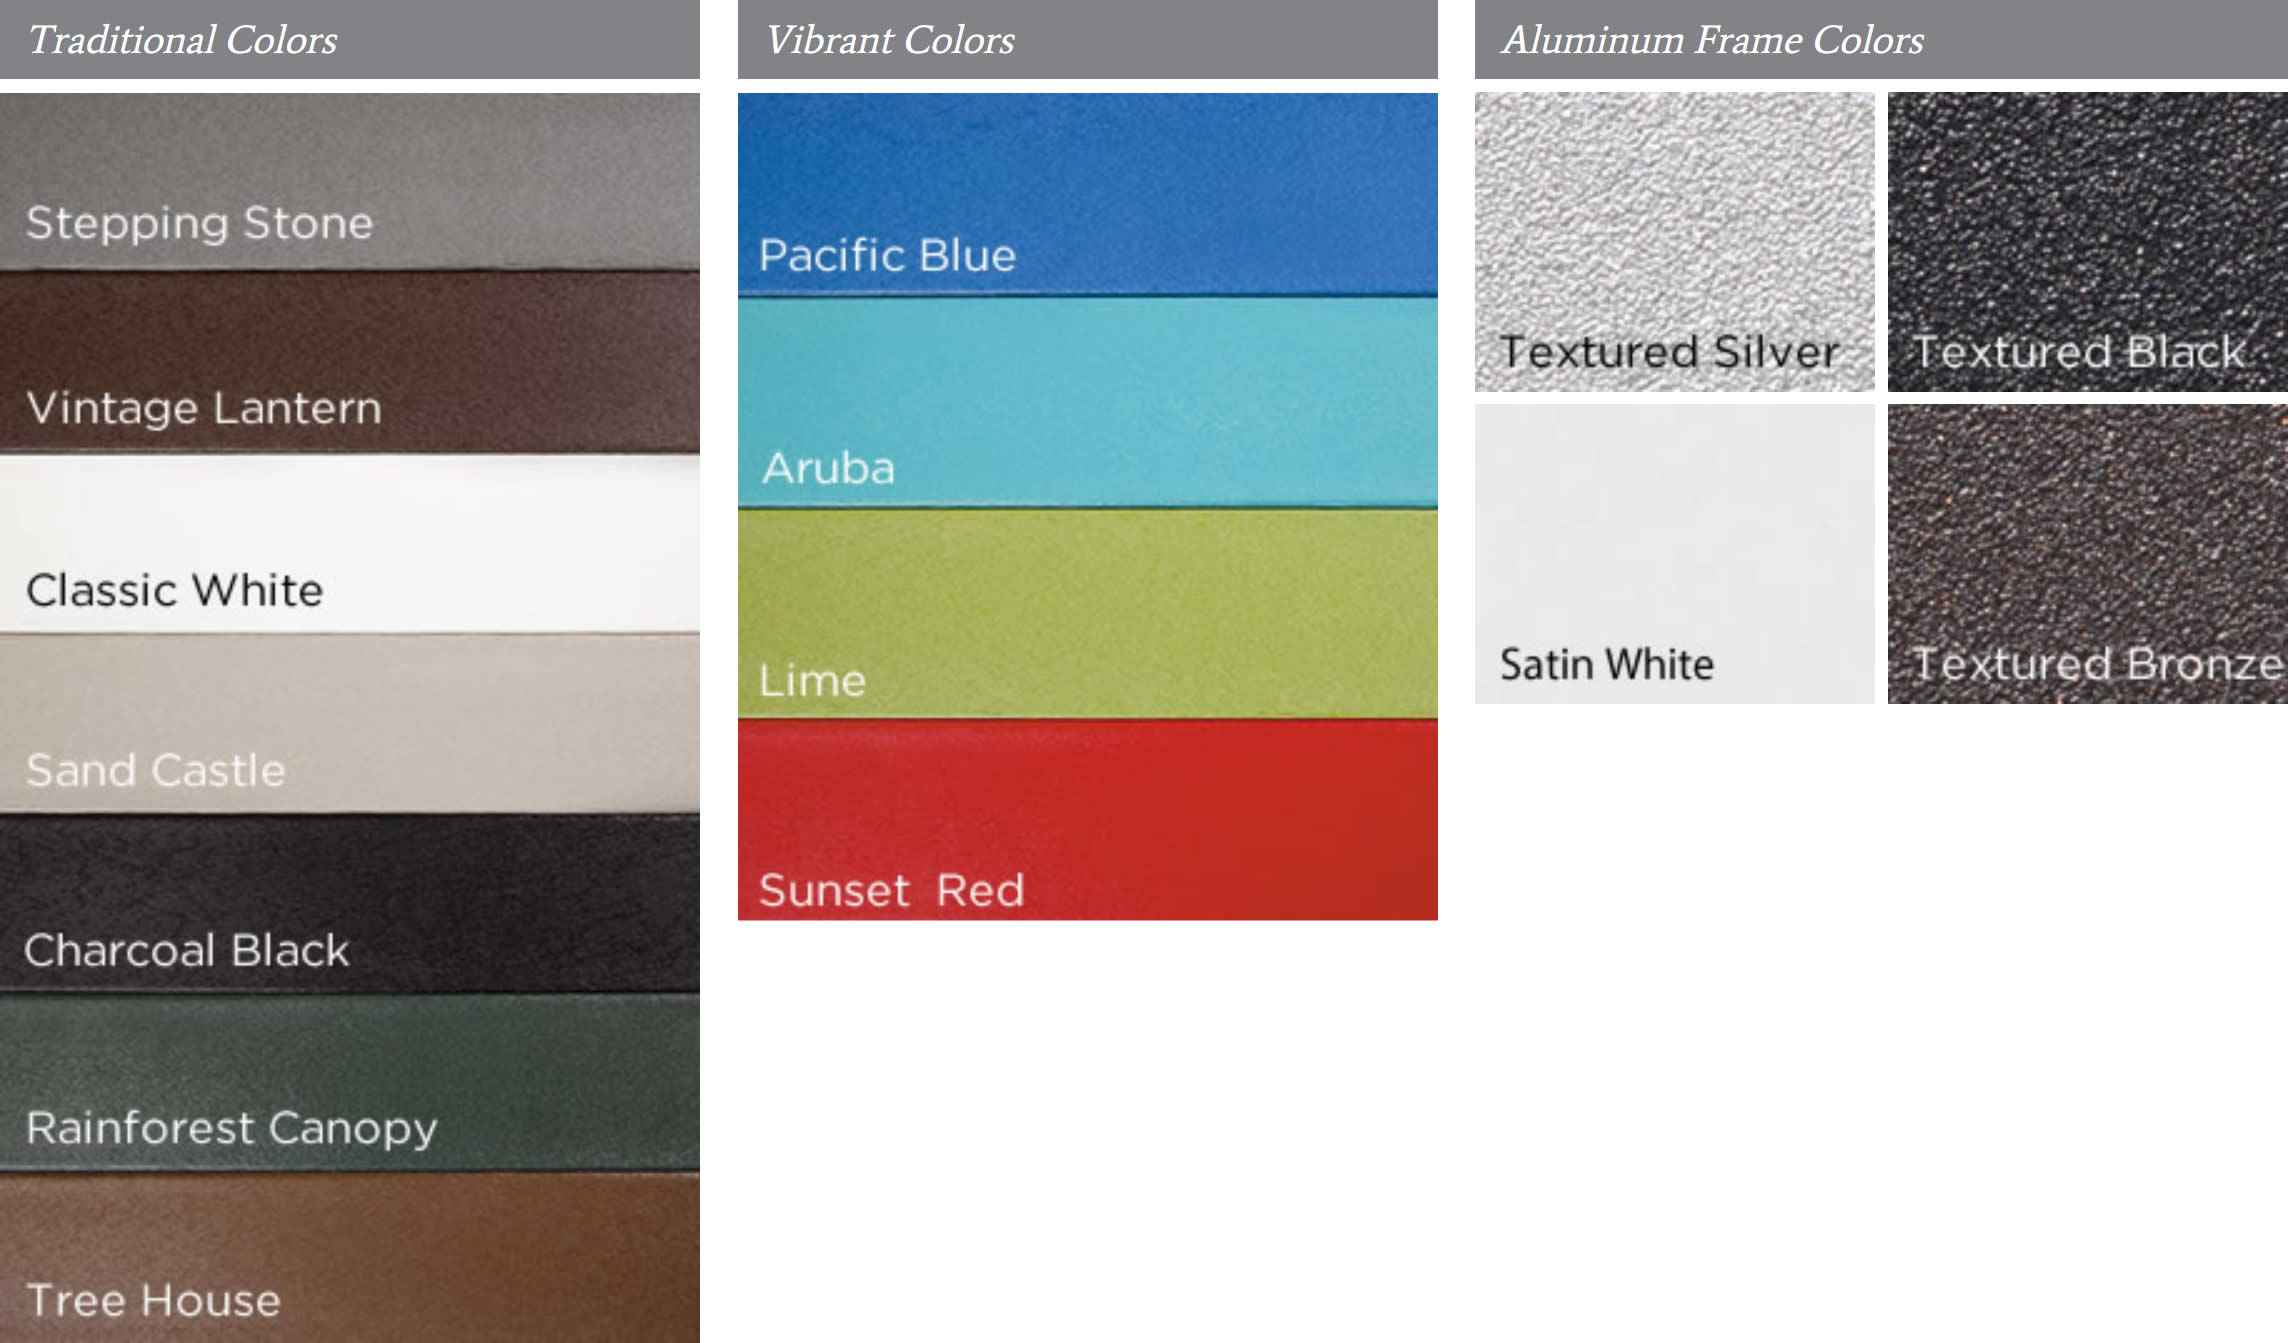 Trex Outdoor Furniture lumber and aluminum frame colors